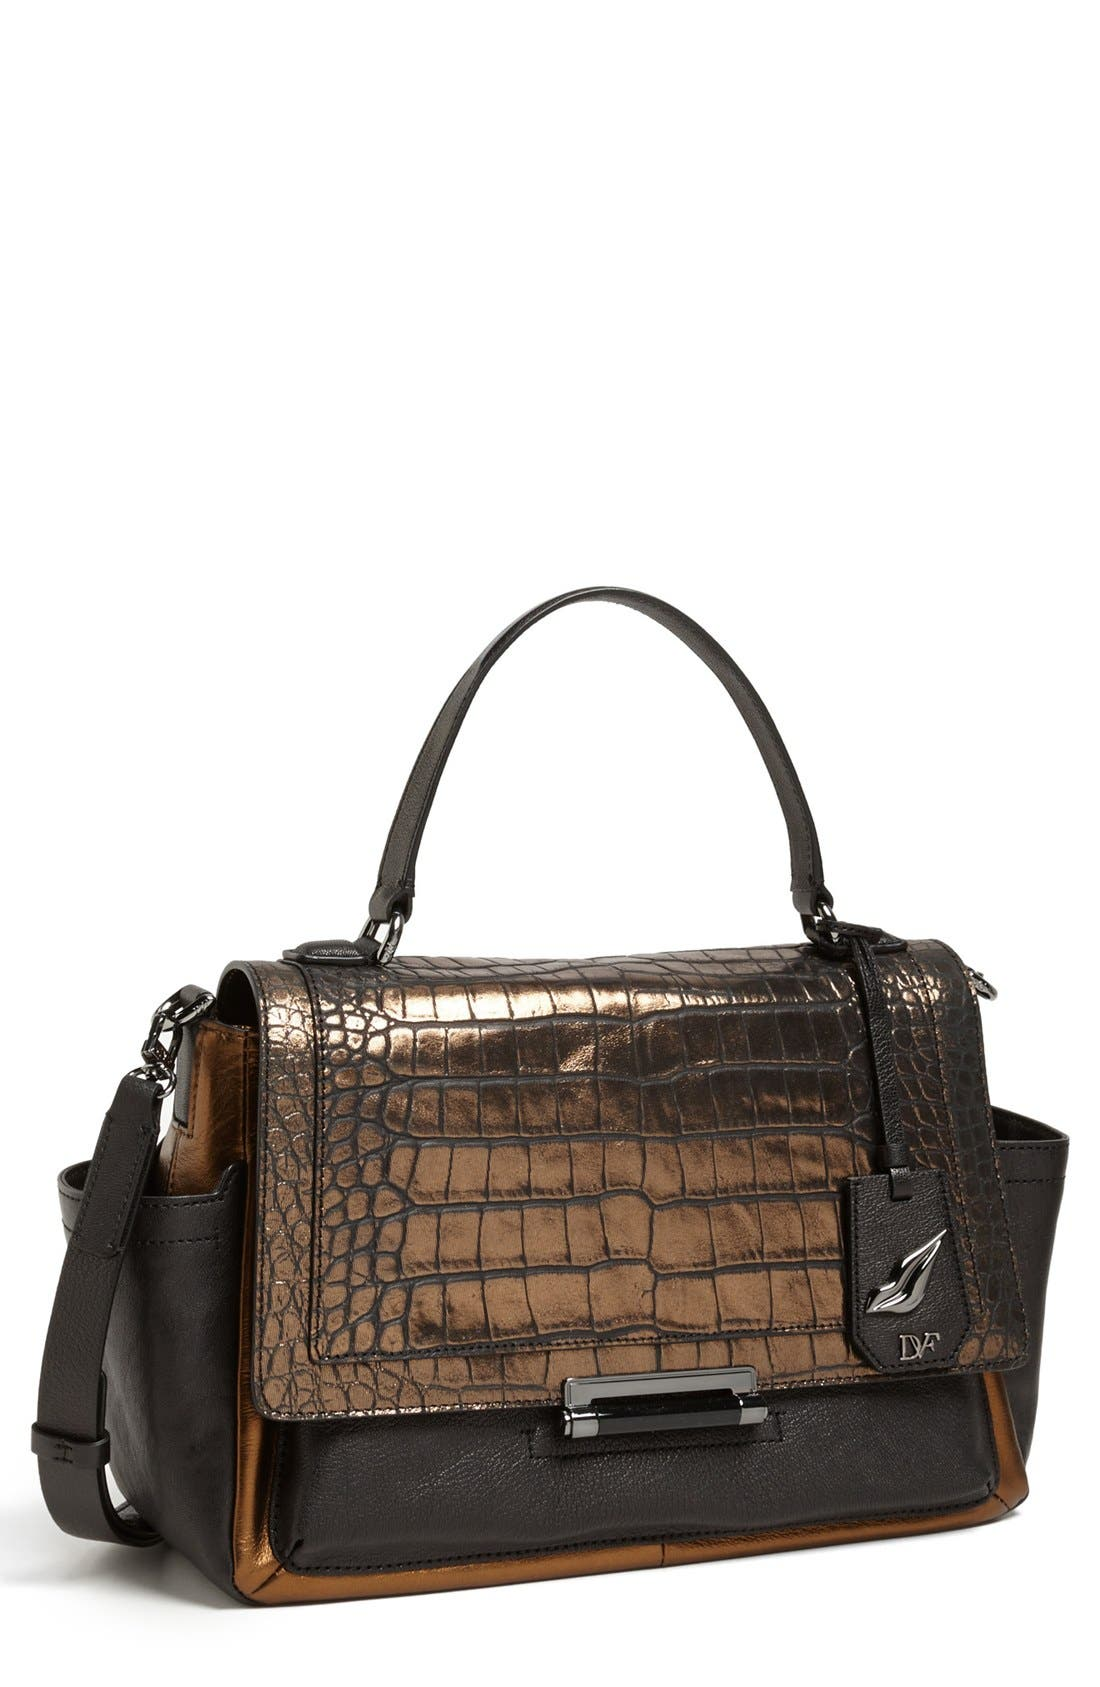 Alternate Image 1 Selected - Diane von Furstenberg 'Highline Courier' Leather Satchel